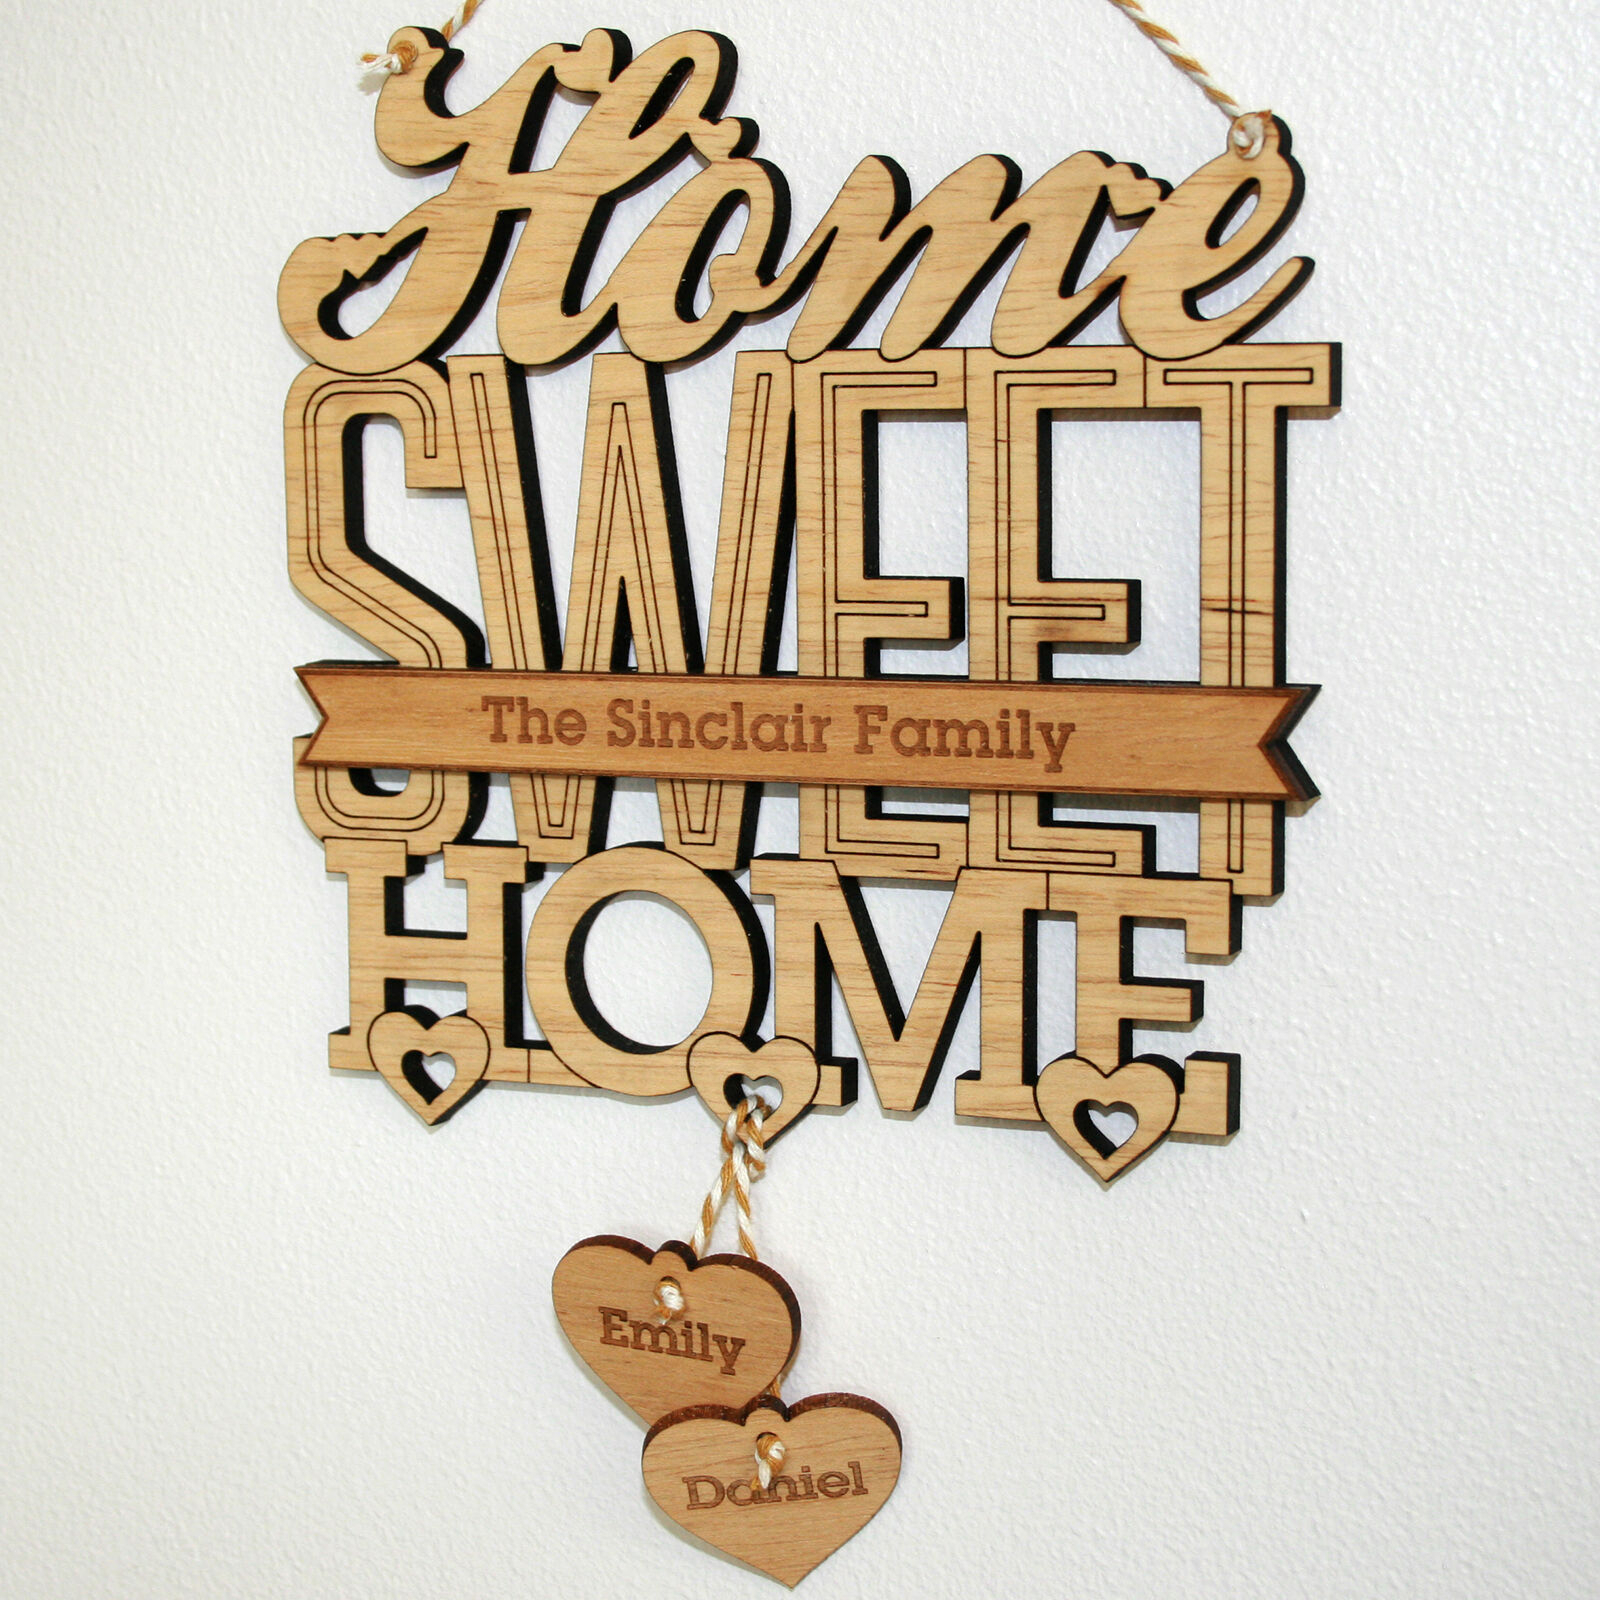 Details About Personalised 'home Sweet Home' House Warming Gift Plaque, New Home Sign With Regard To Laser Engraved Home Sweet Home Wall Decor (View 24 of 30)